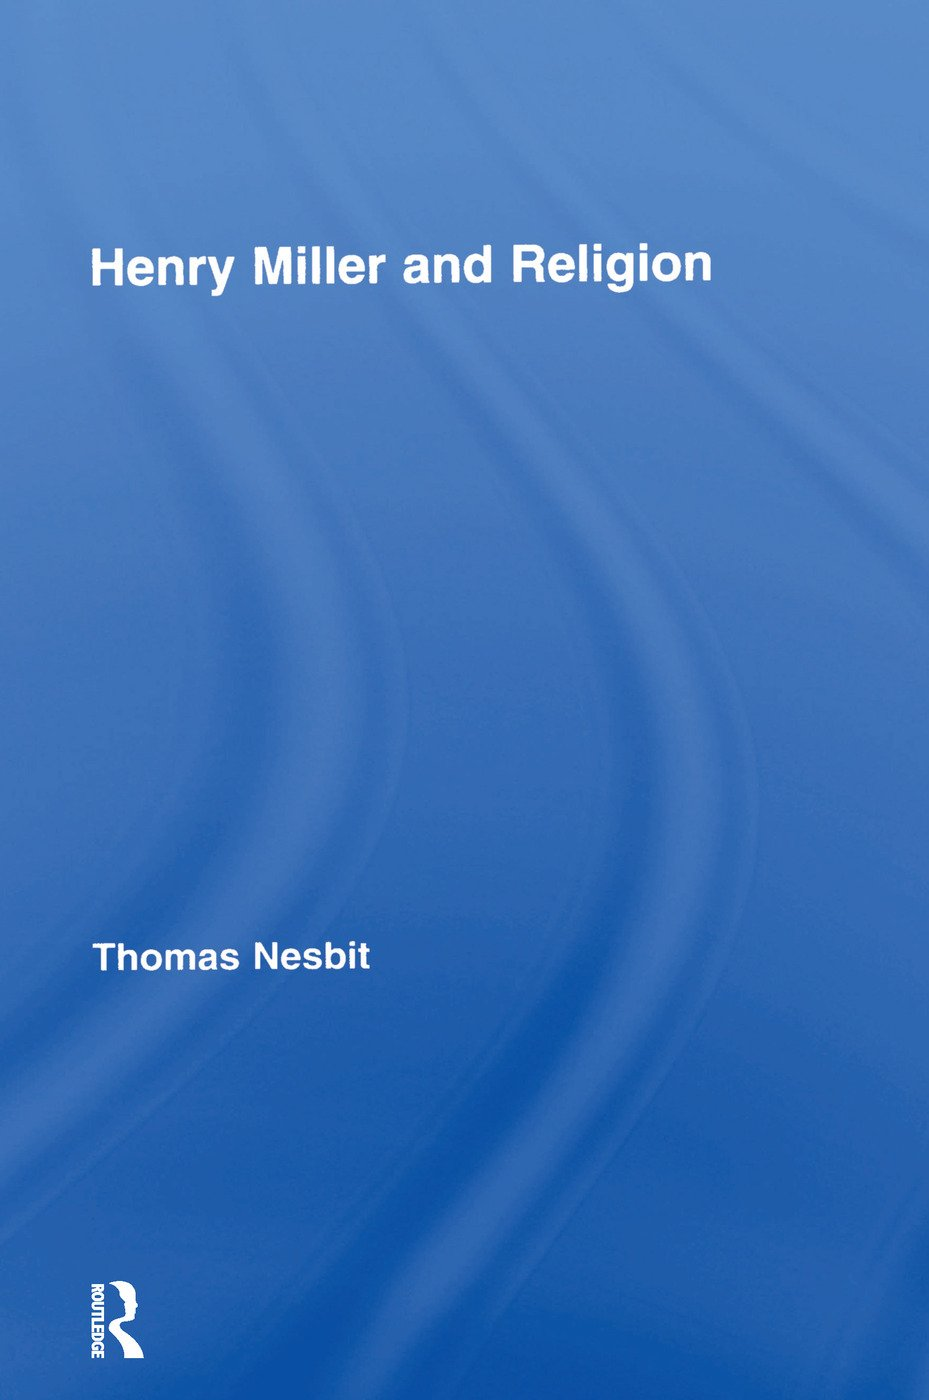 Henry Miller and Religion